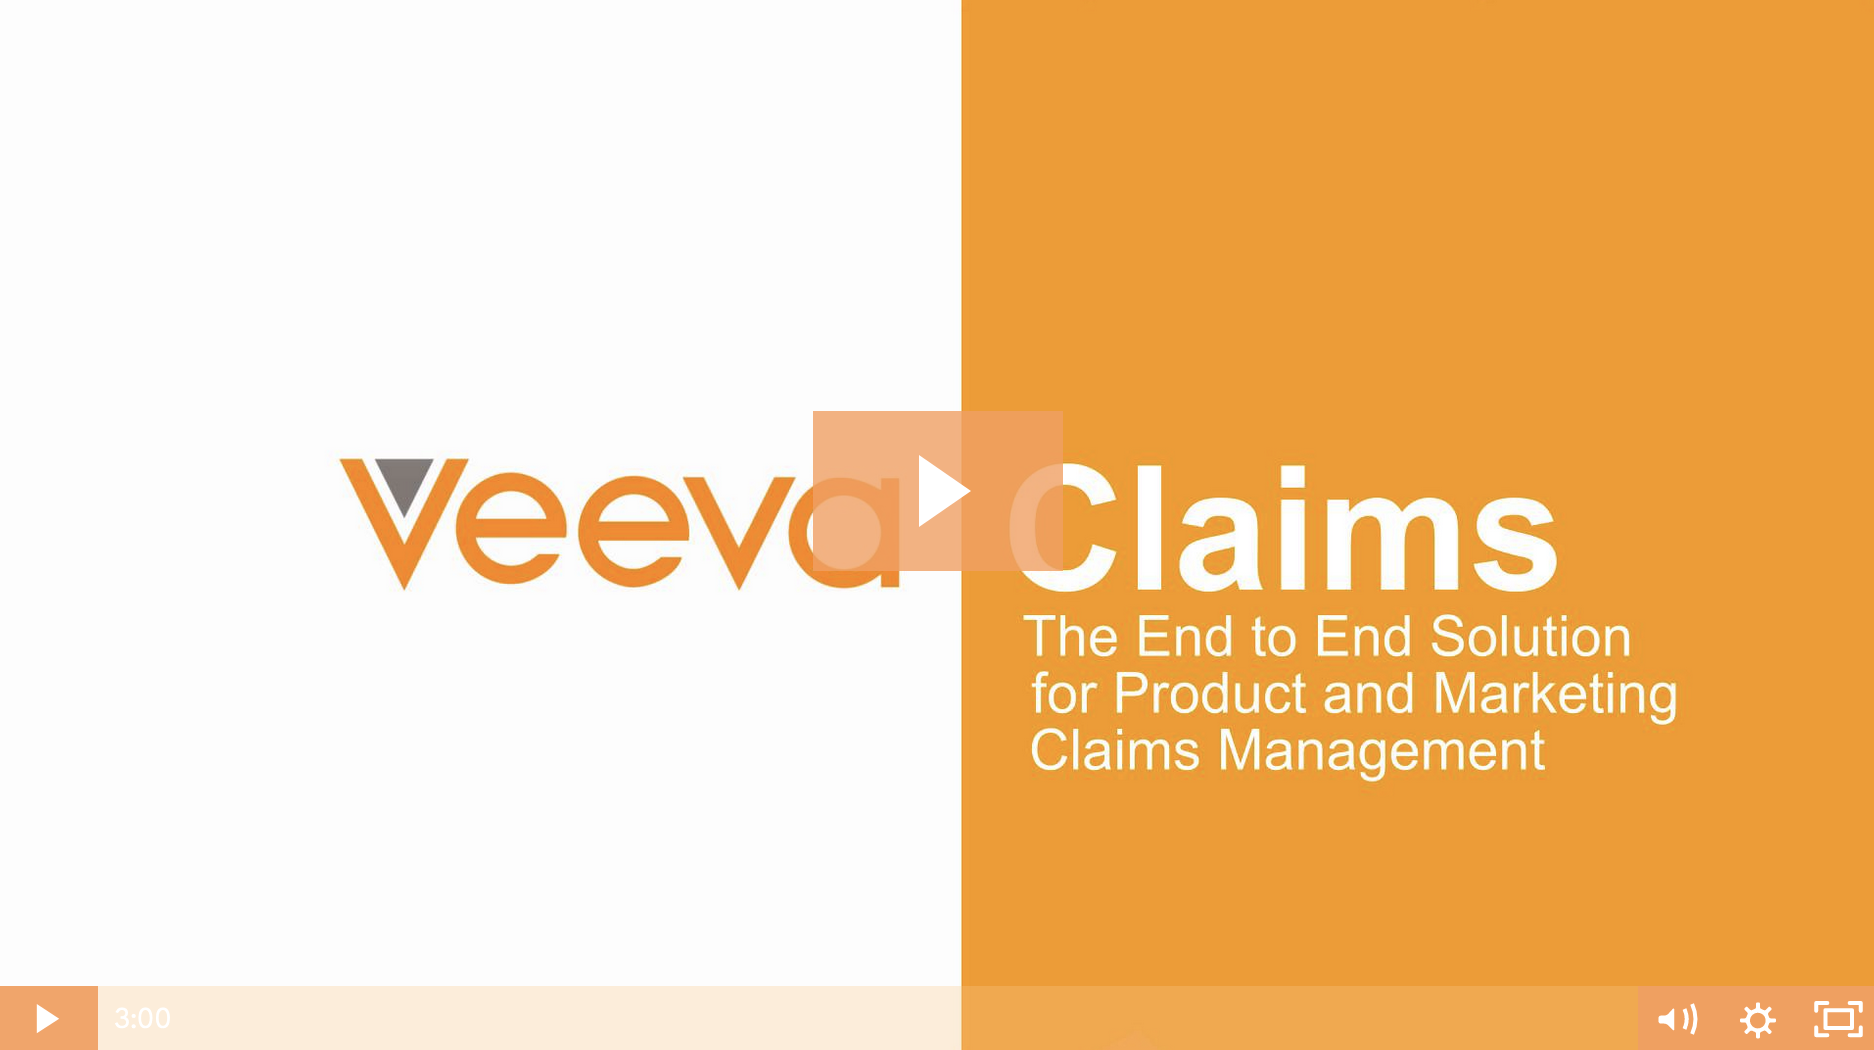 Veeva Claims Product Video